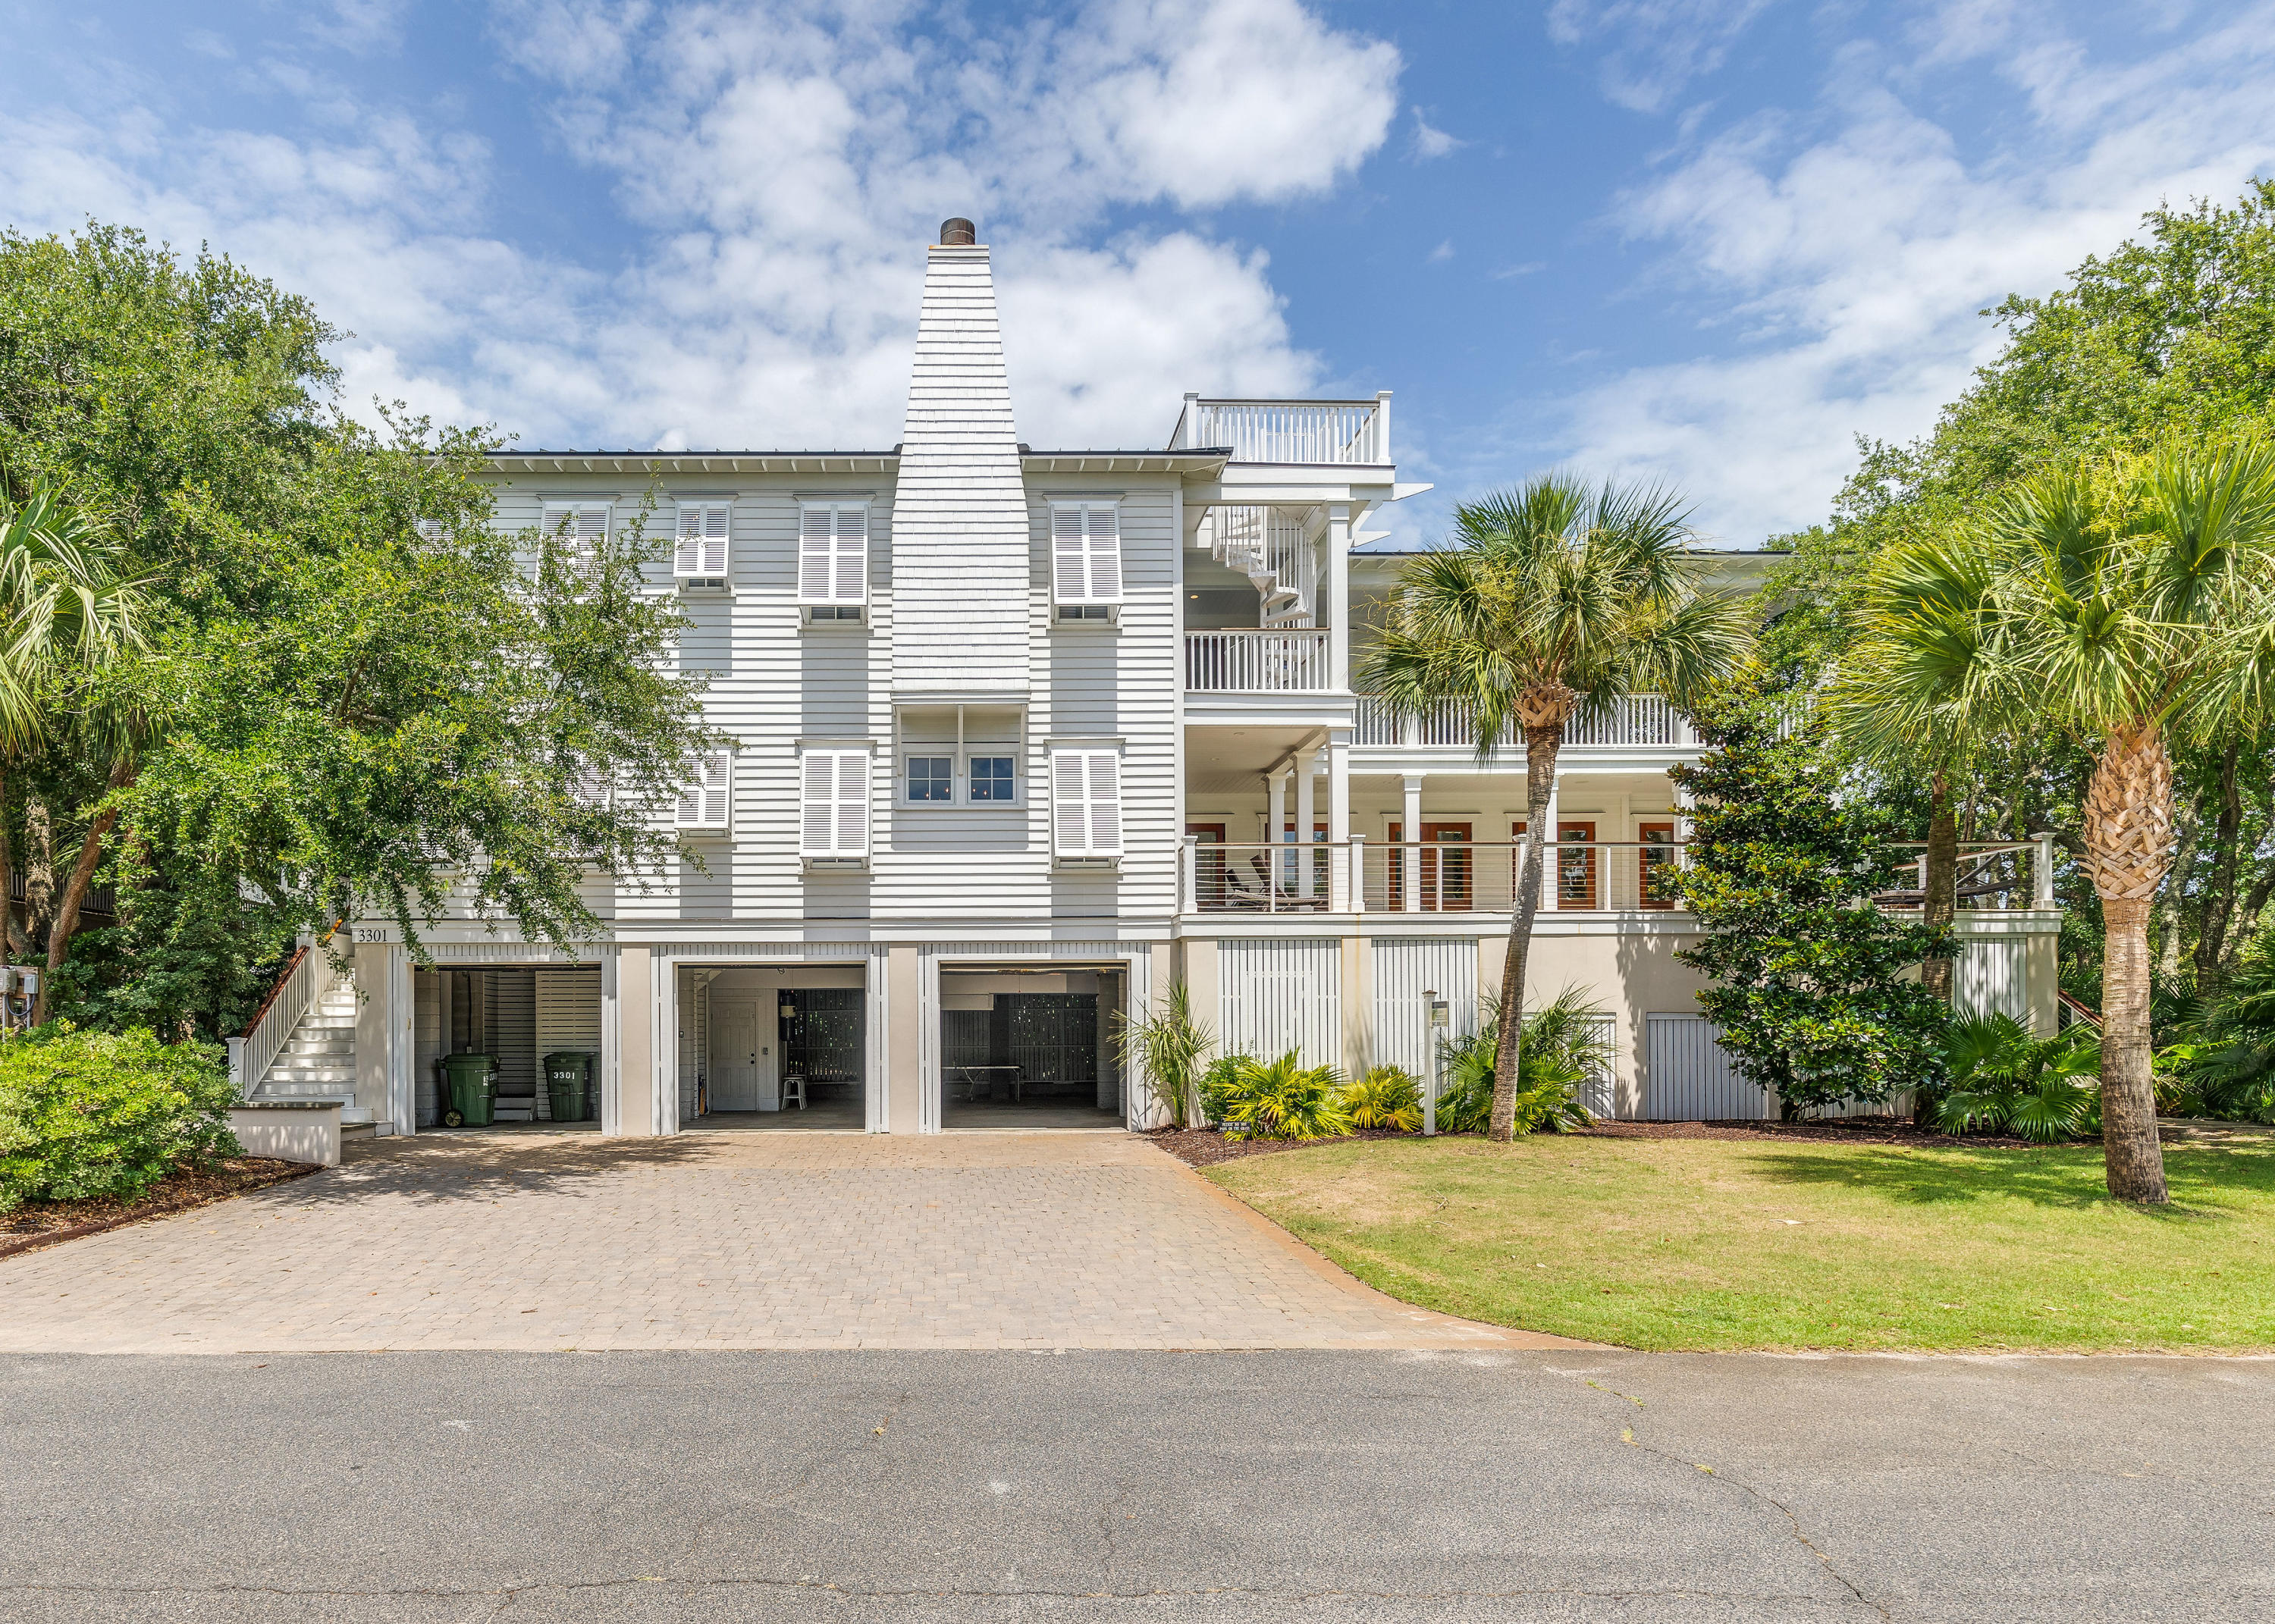 Isle of Palms Homes For Sale - 3301 Palm, Isle of Palms, SC - 8